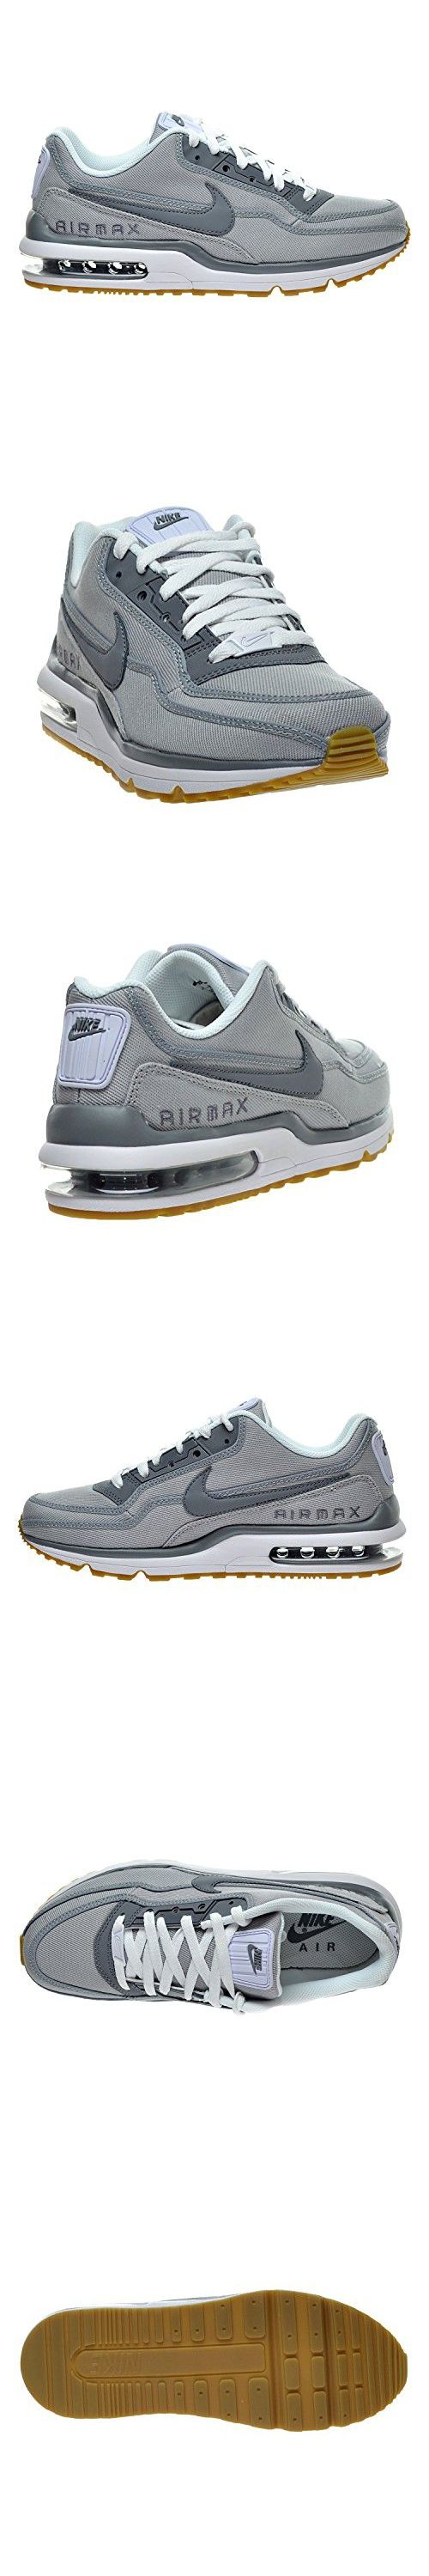 cheap for discount 6c4a9 8f25a Nike Air Max LTD 3 TXT Men s Shoes Wolf Grey Cool Grey White Gum Light Brown  746379-012